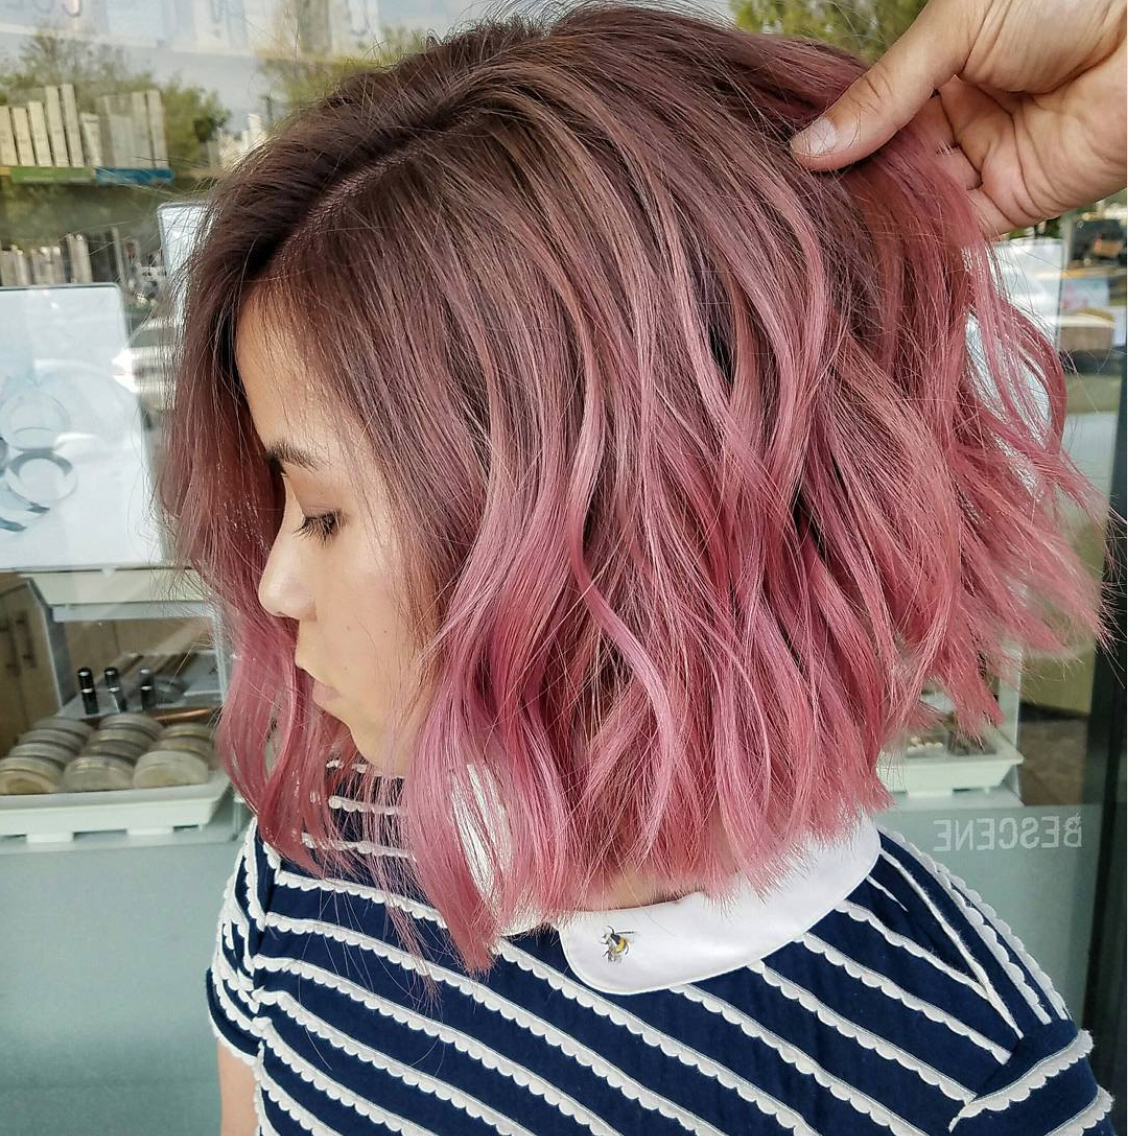 Current Long Layered Ombre Hairstyles With 10 Short Ombré Hairstyles We Love (View 10 of 20)